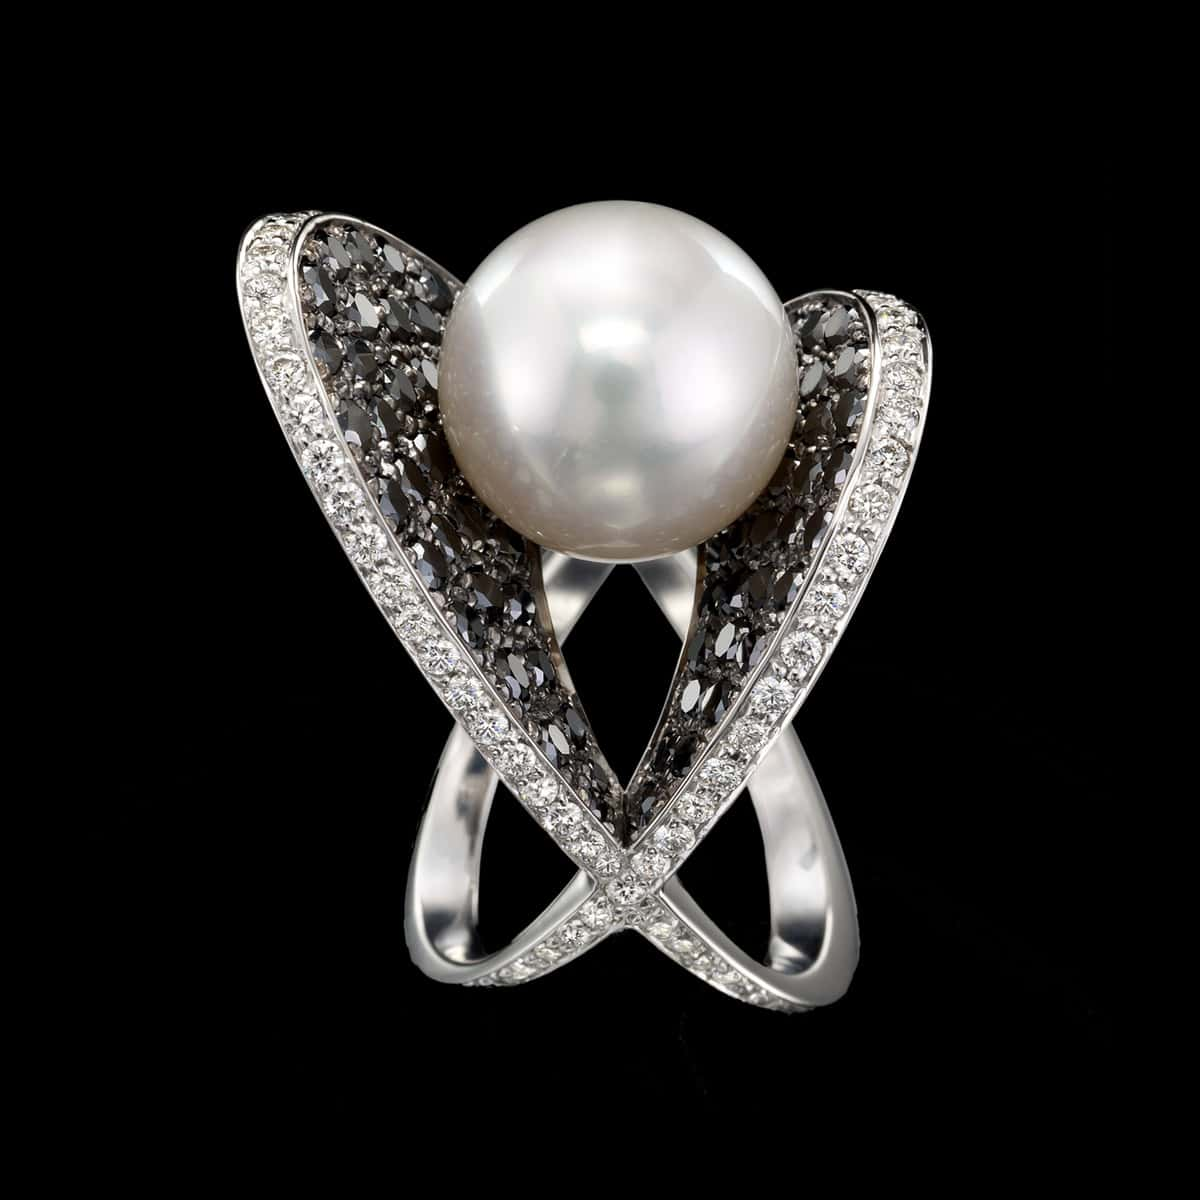 South Sea Pearl Diamond Ring Moonlight and Caviar